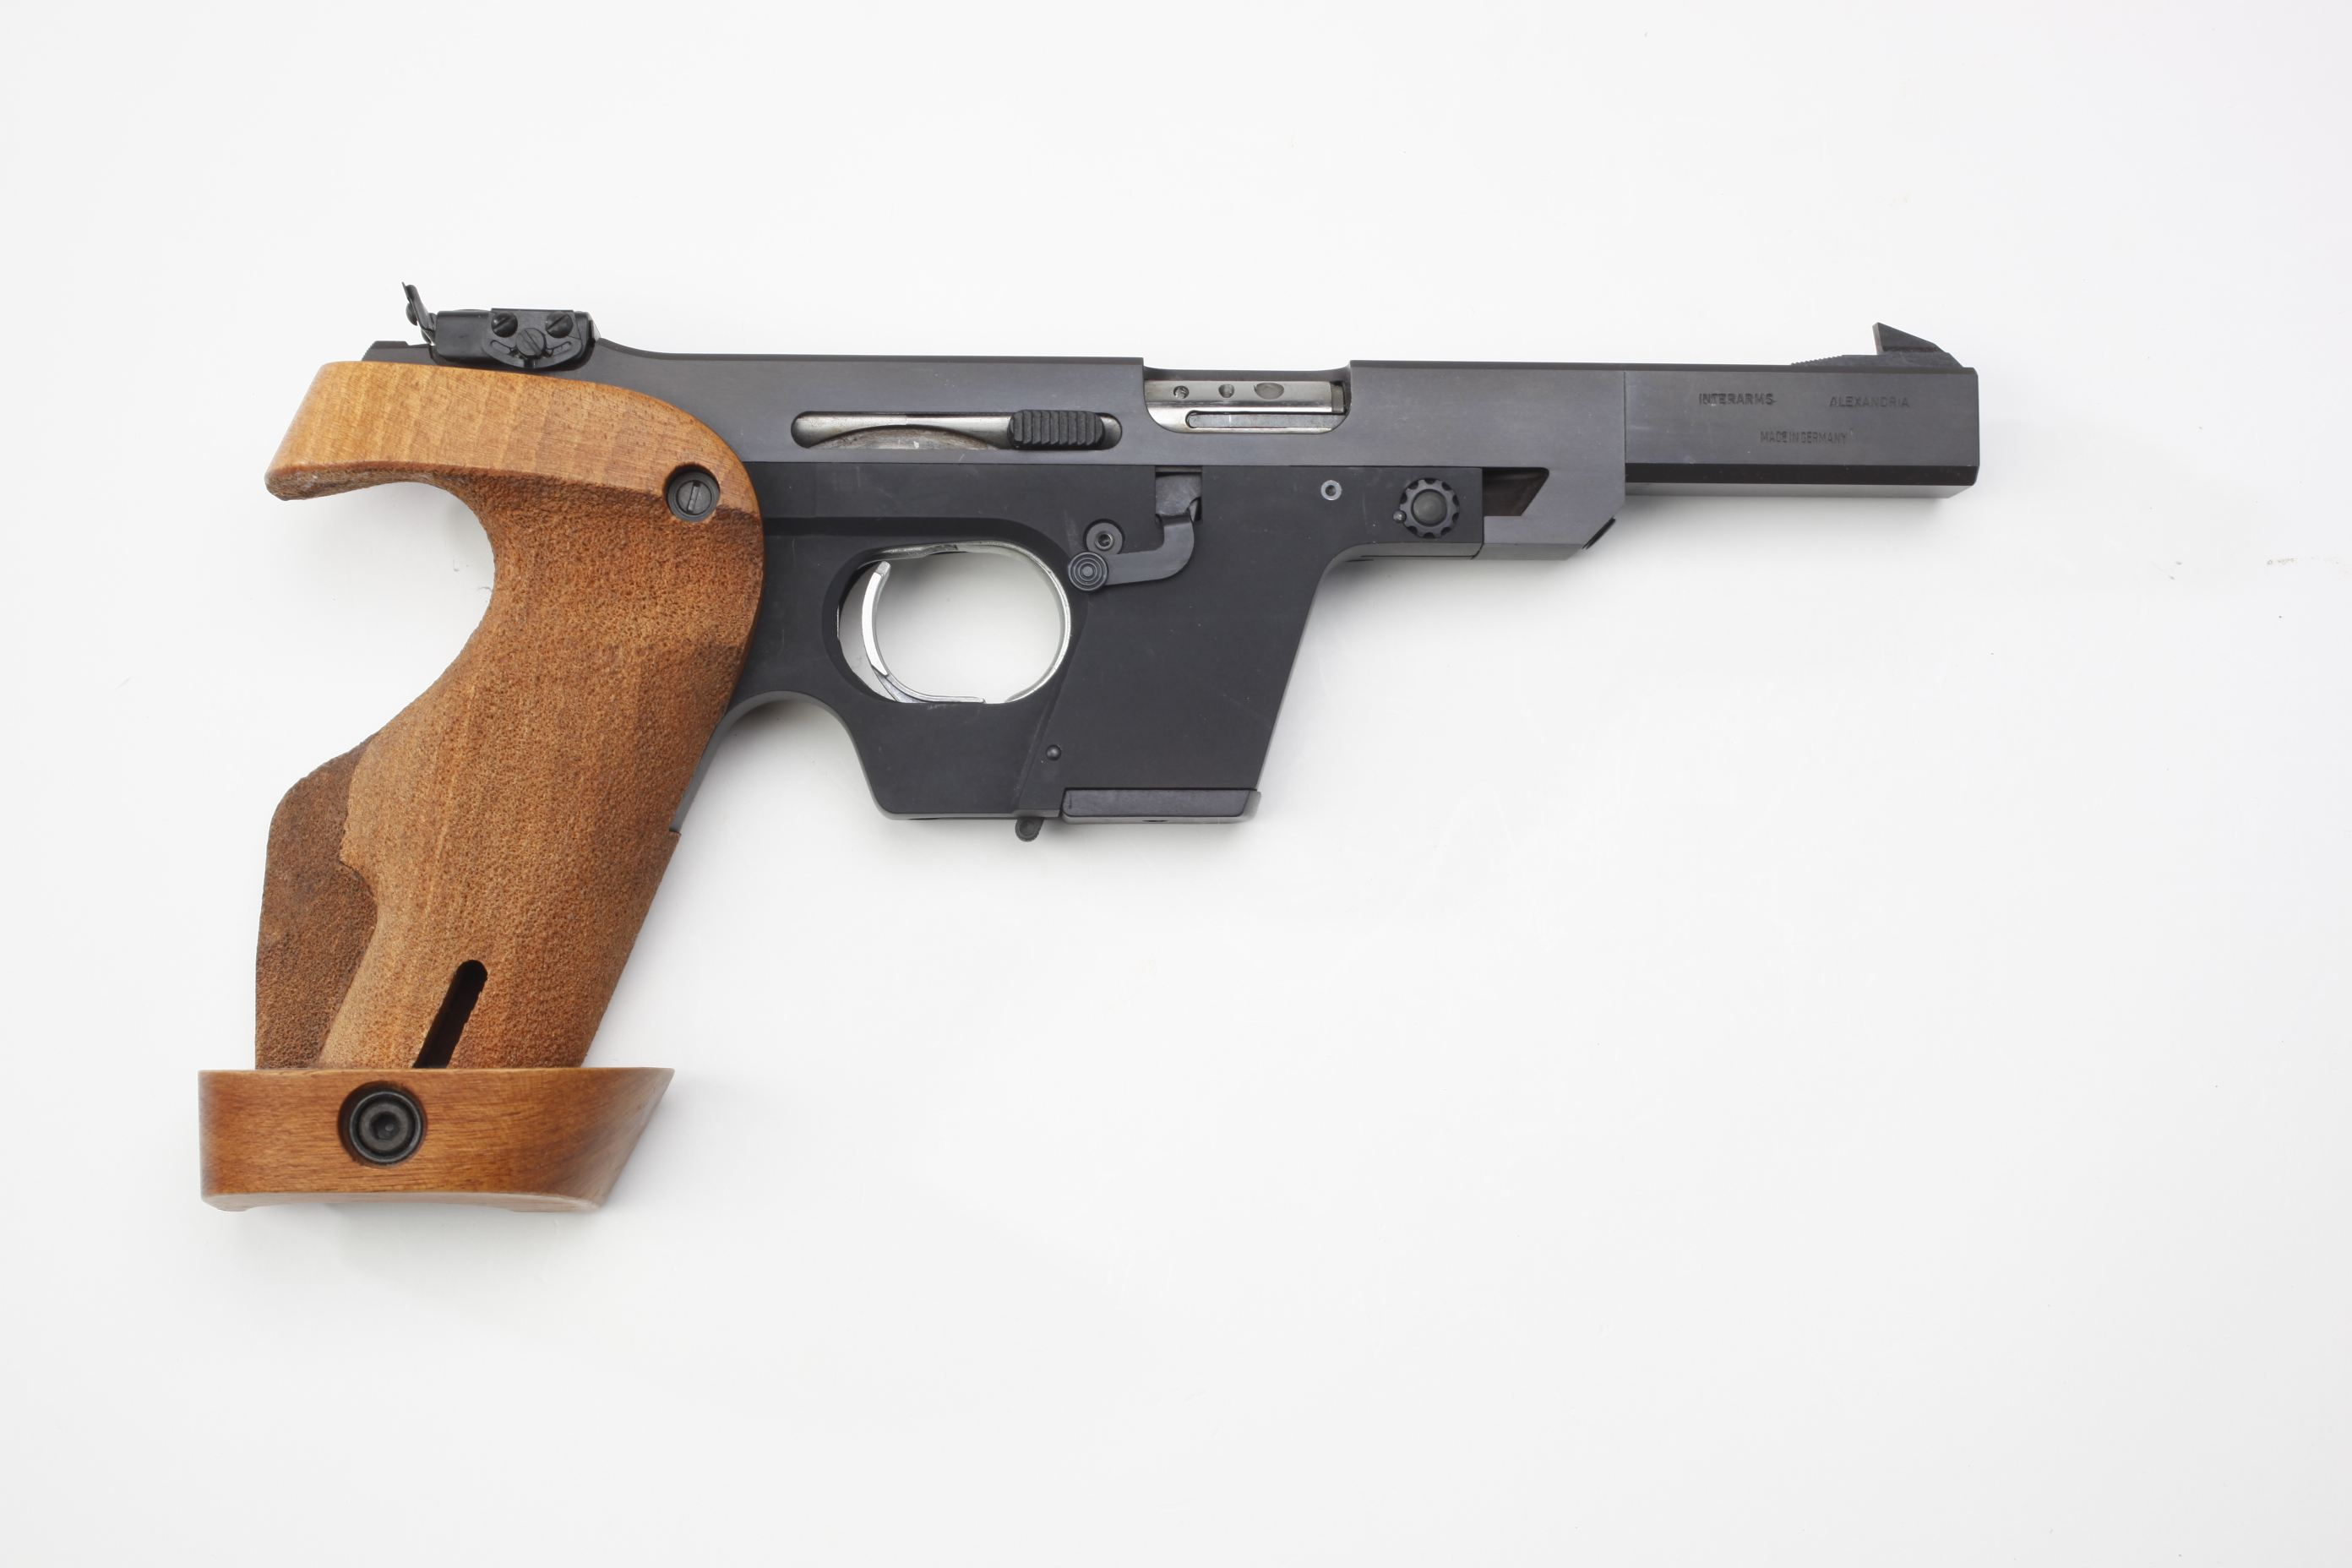 Walther OSP Semi Automatic Target Pistol